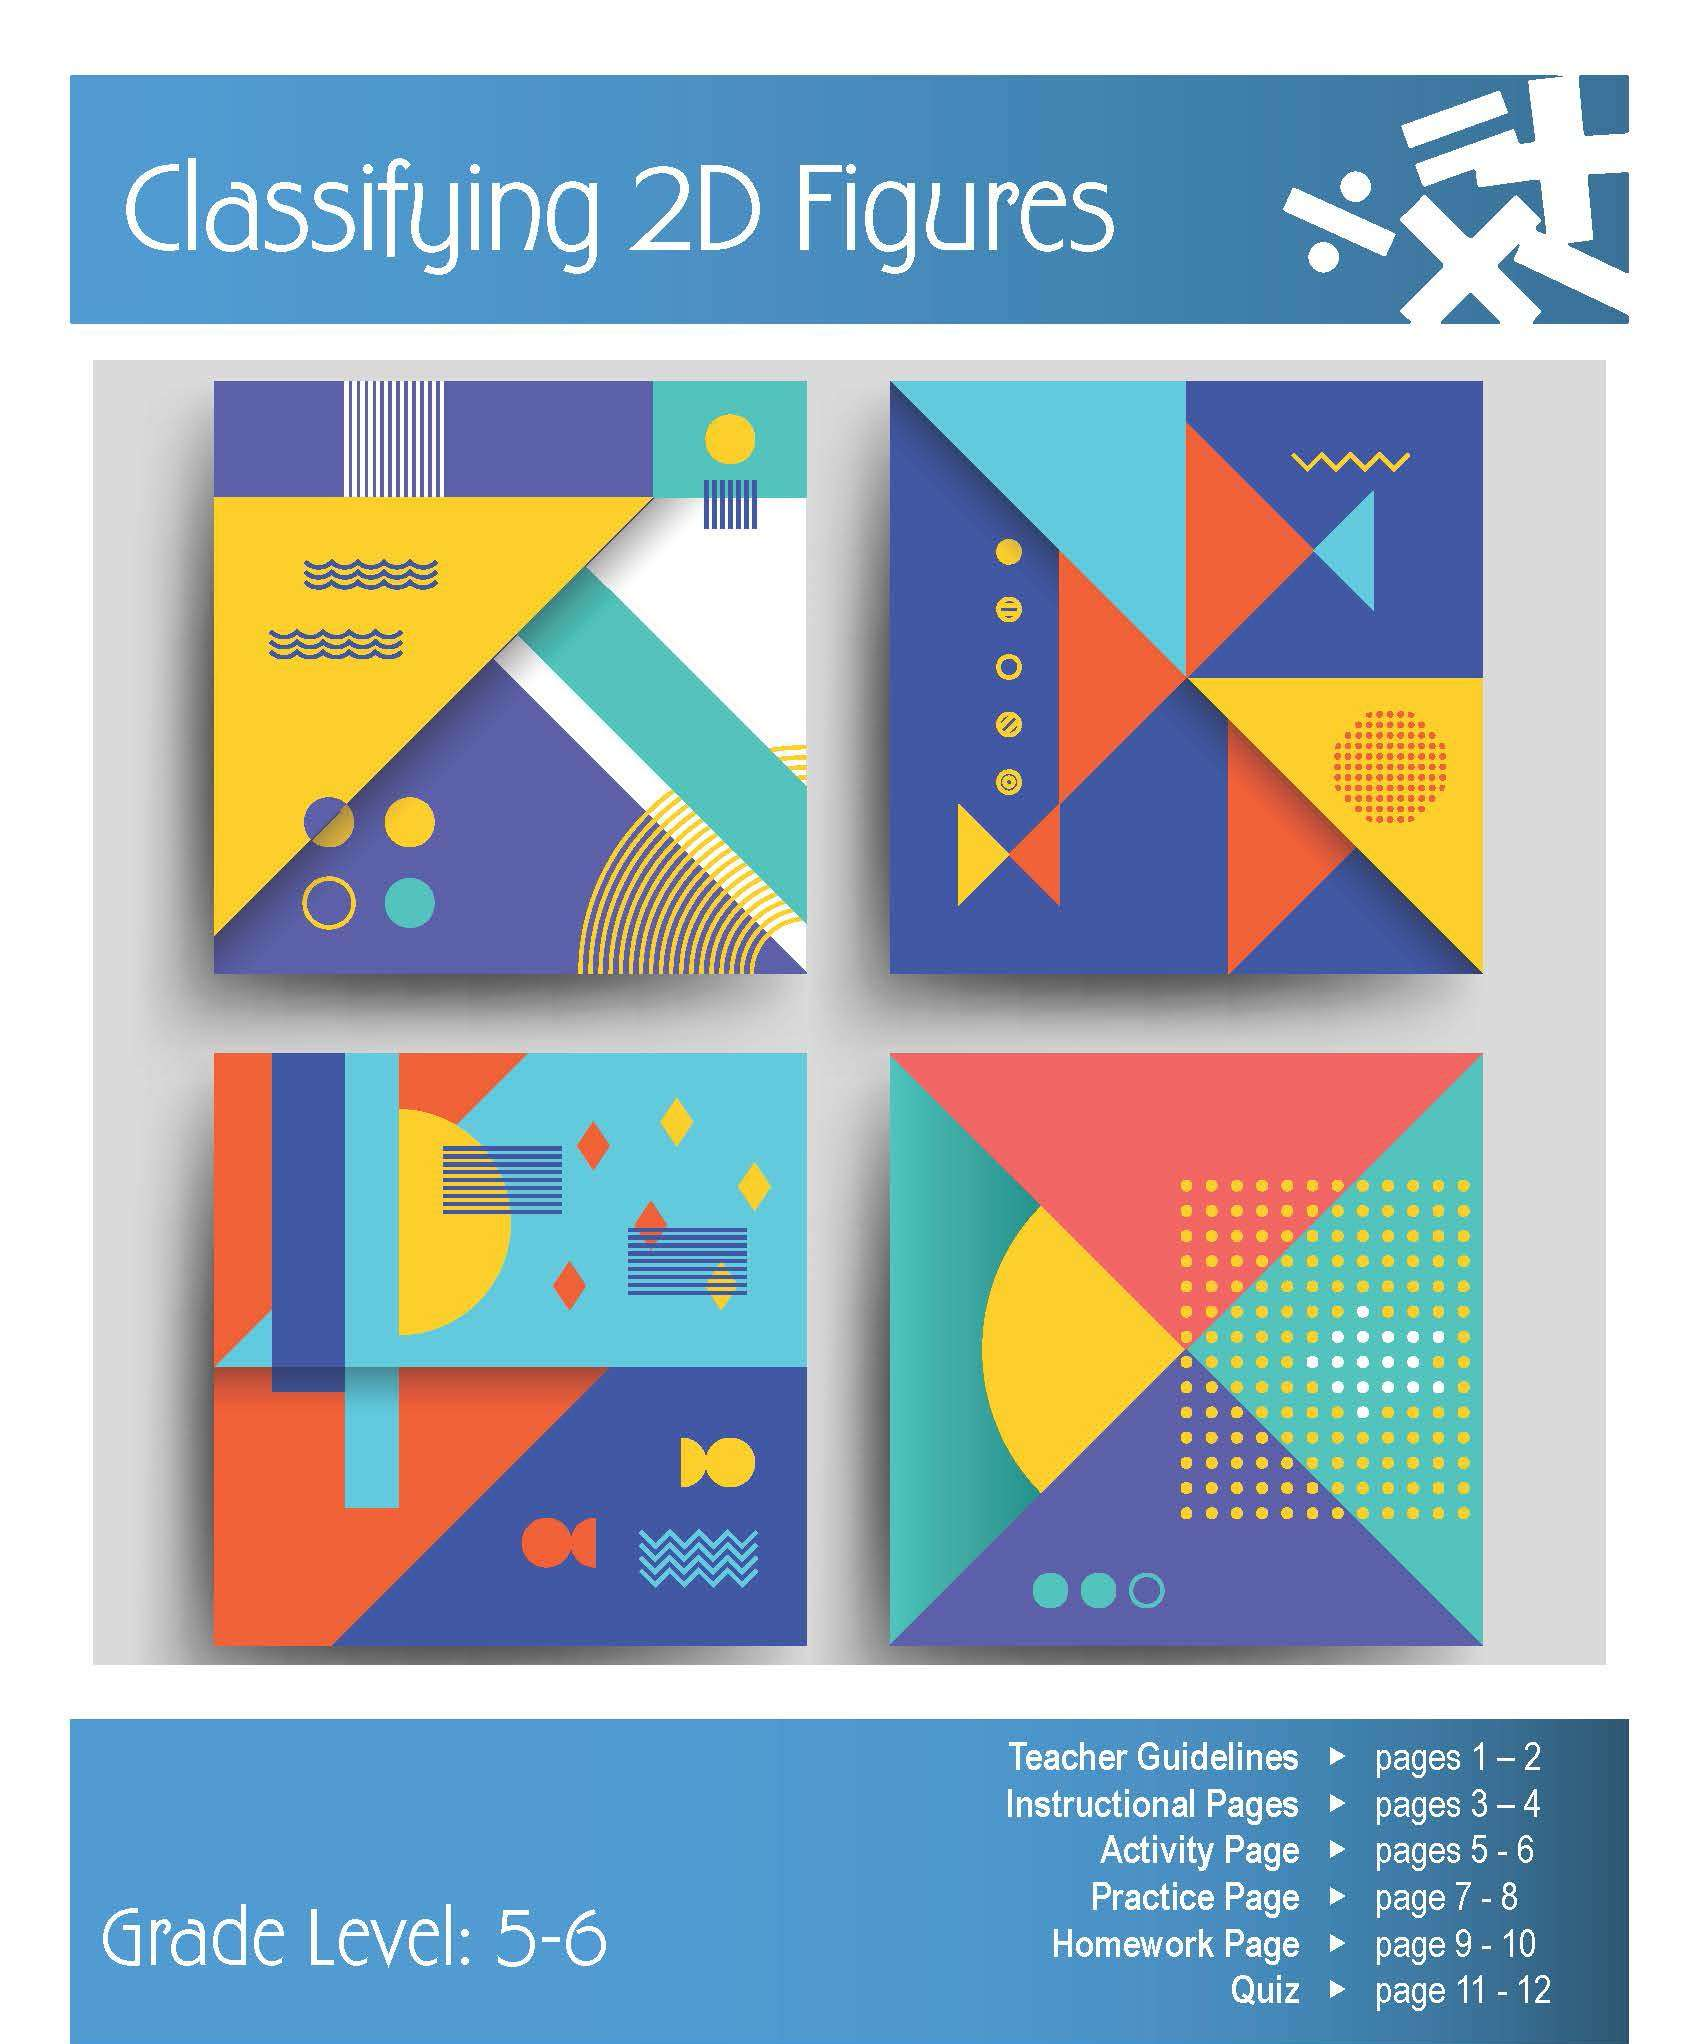 Classifying 2D Figures Lesson Plan | Clarendon Learning